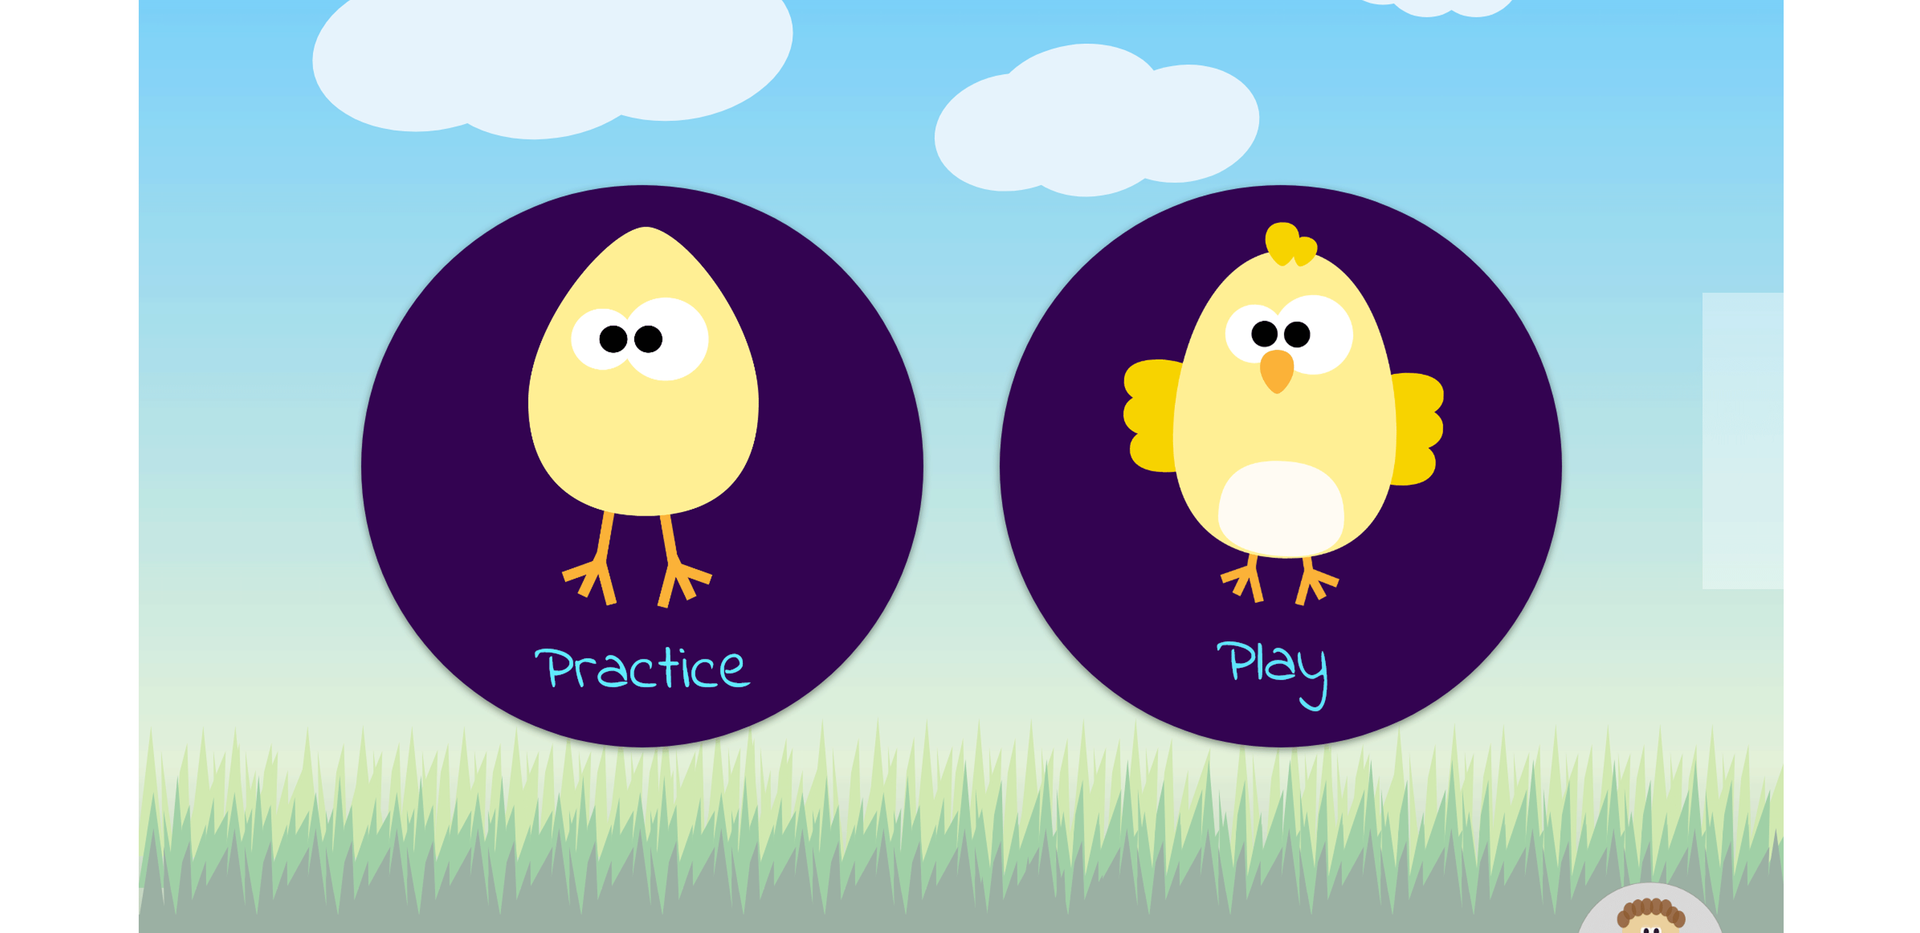 Proposed: introducing Practice Mode through which players are given the opportunity to learn while playing at a slower pace and receive constant hints/feedbacks before attempting to test their knowledge through Play Mode which is fast paced with no hints.